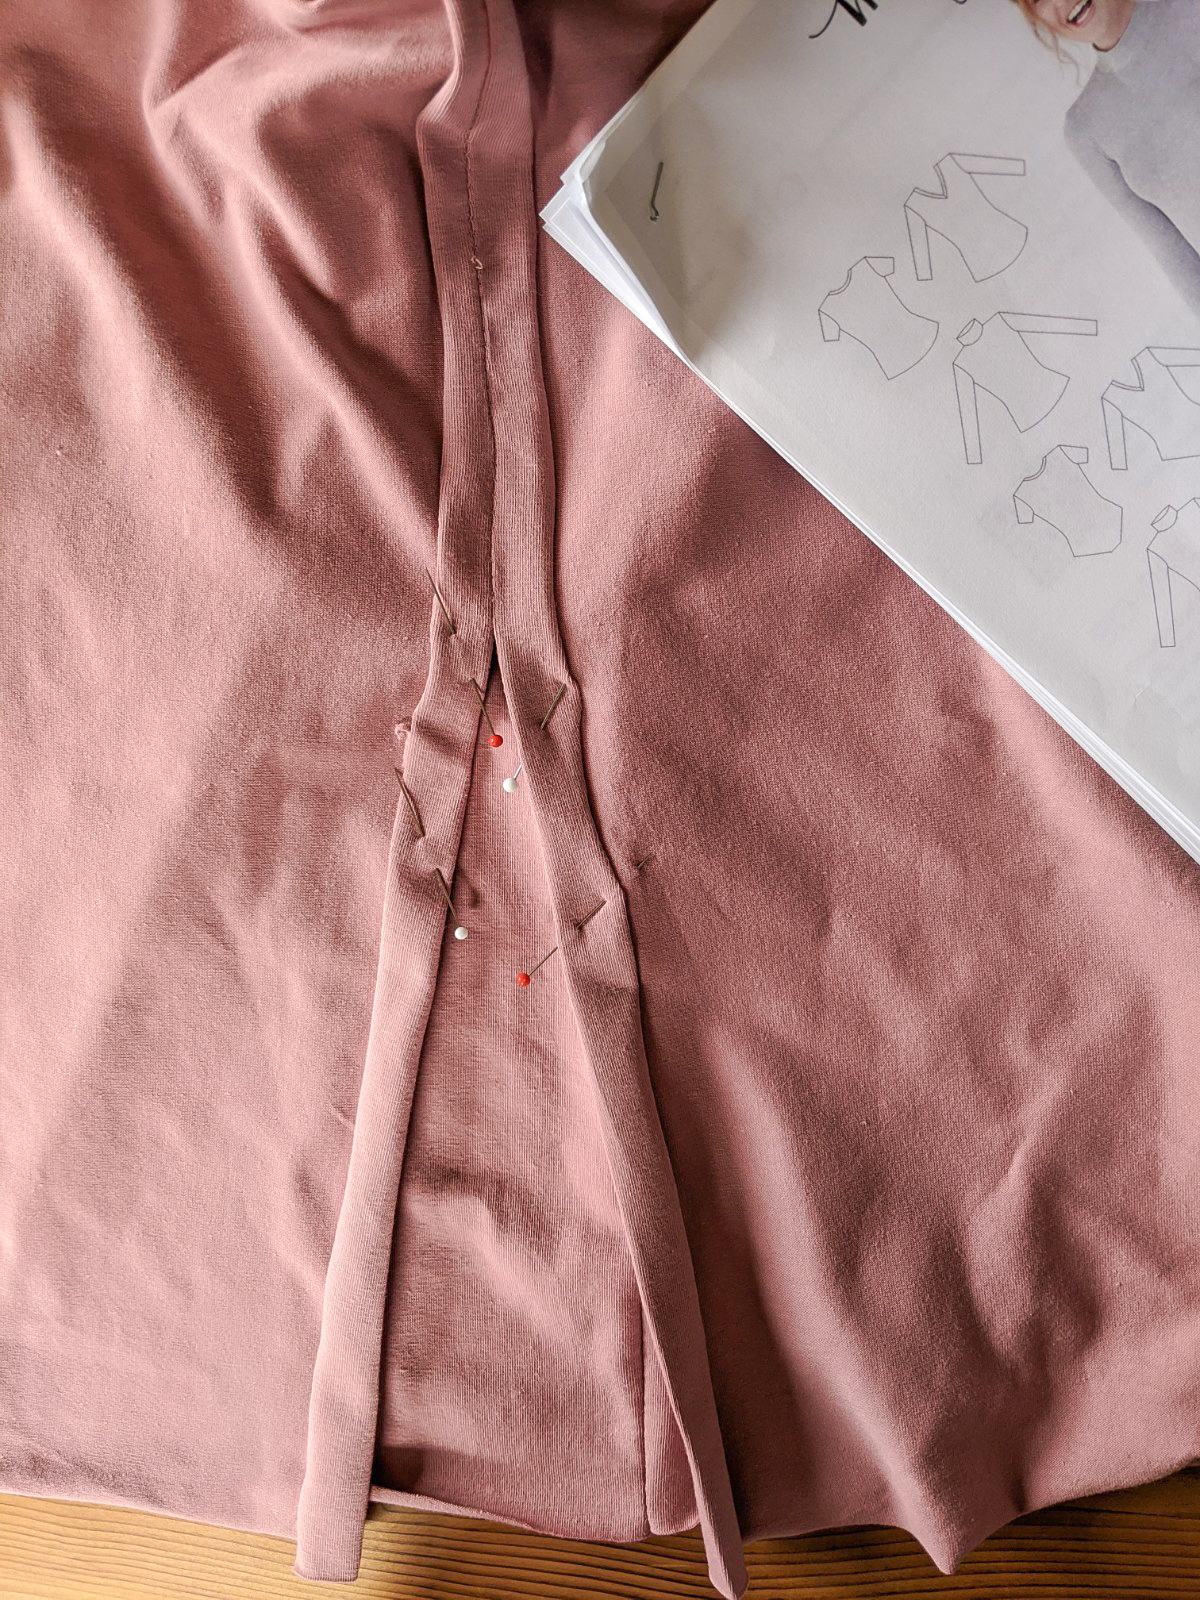 Now flip your dress wrong side out and pin the seam allowances open, at the split.